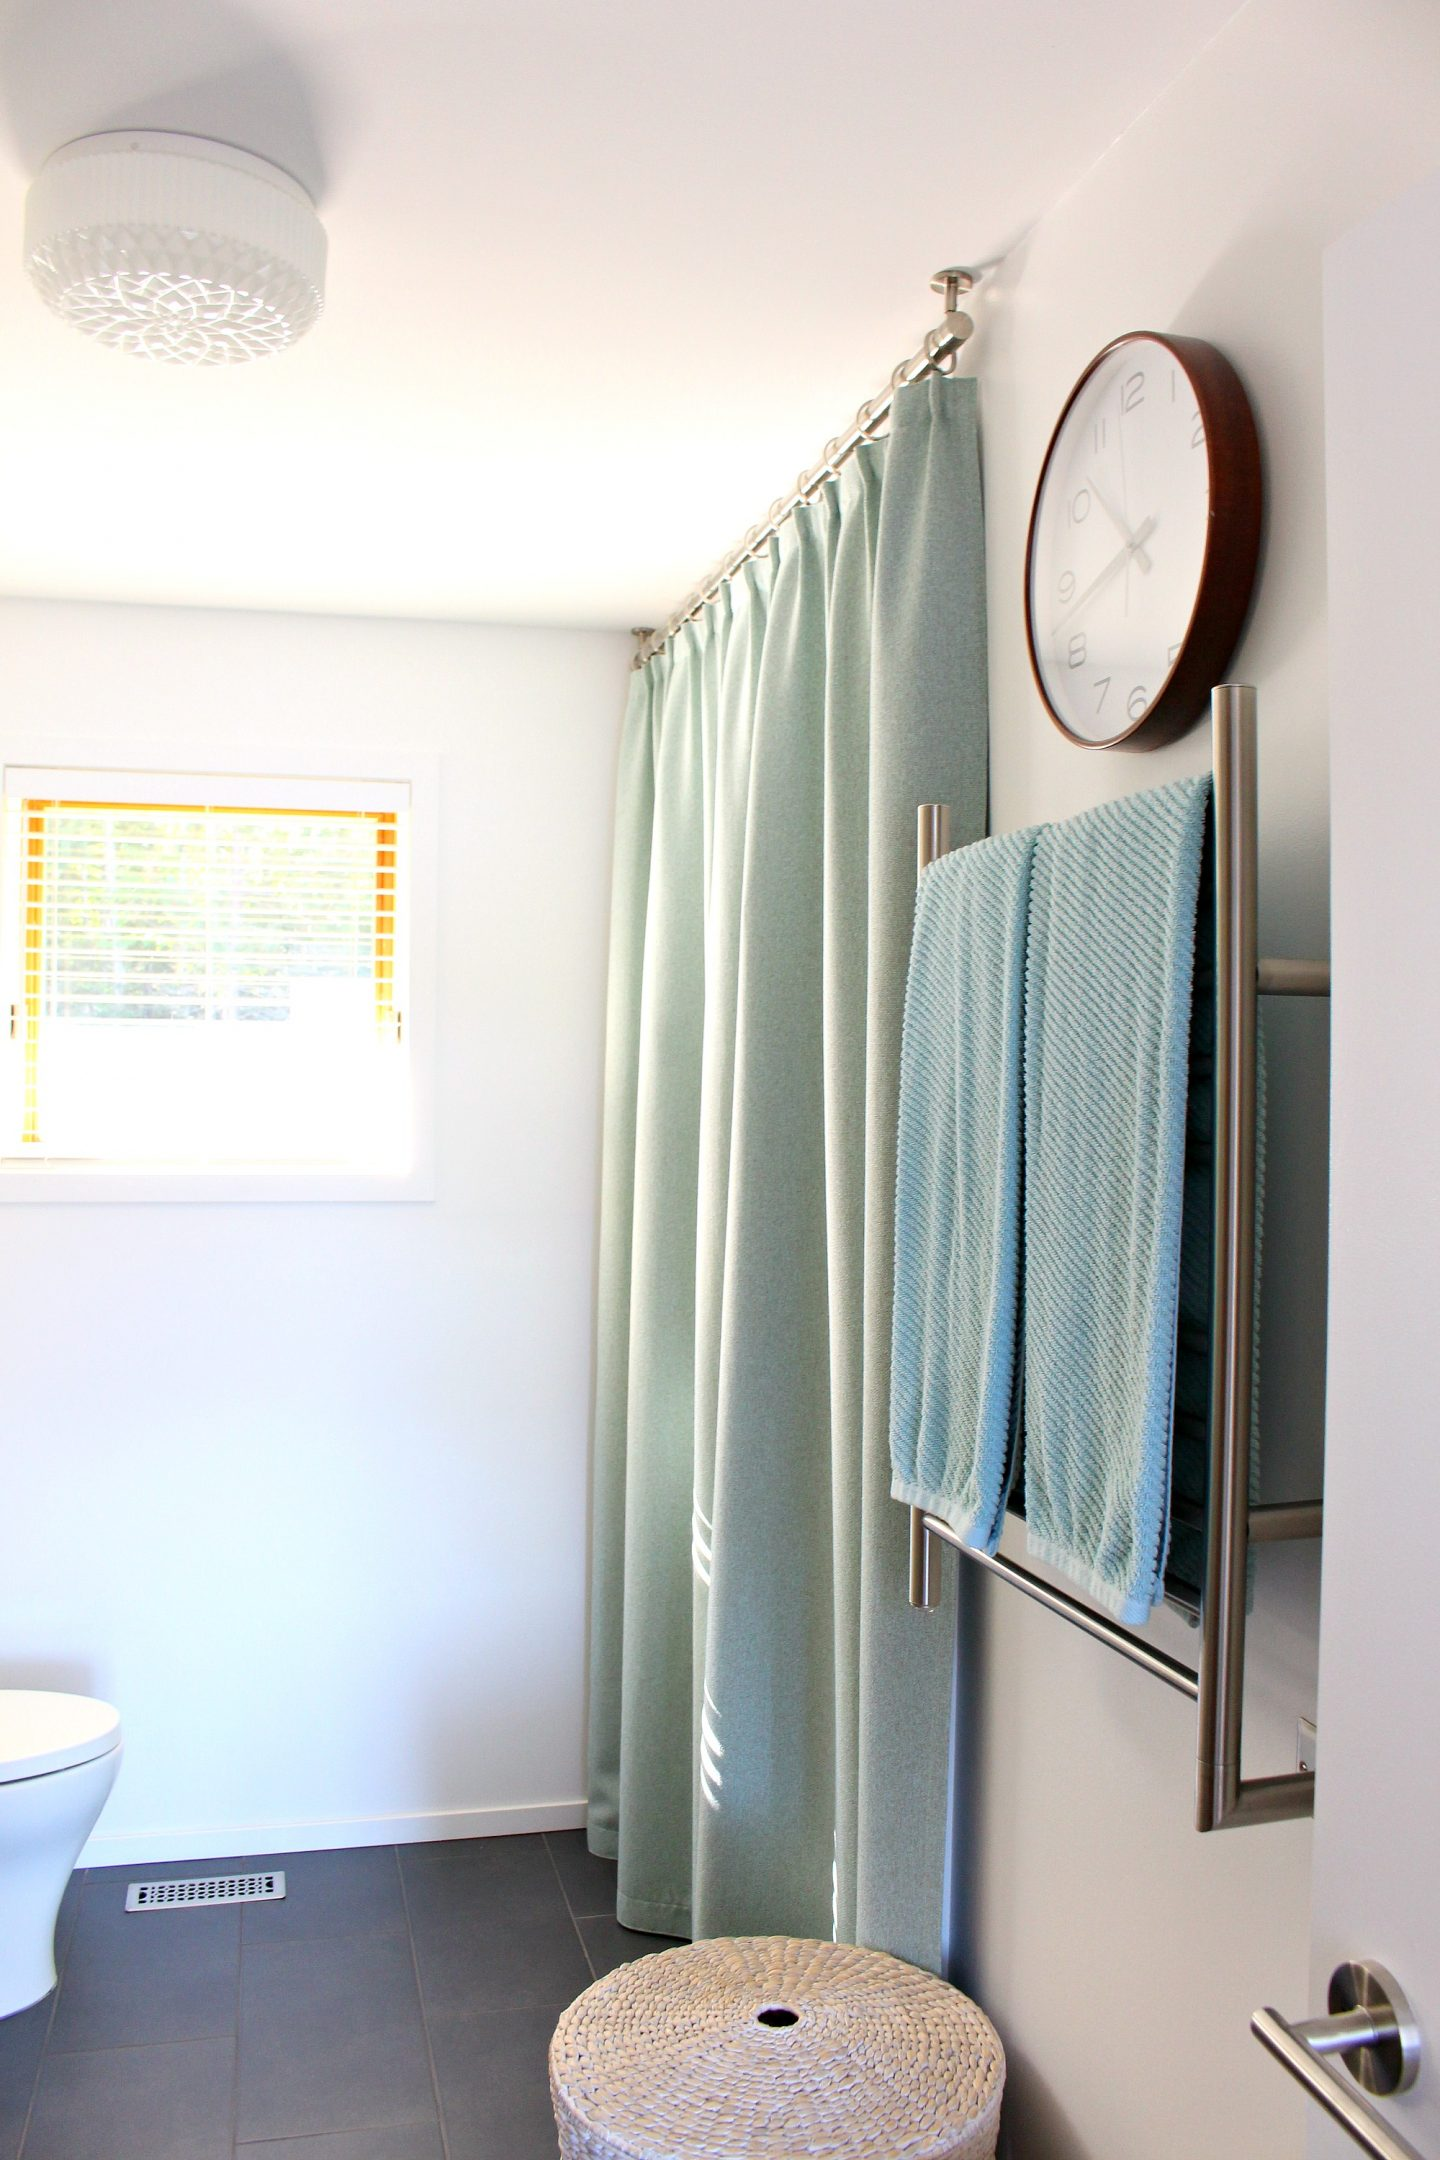 Bathroom Update Ceiling Mounted Shower Curtain Rod Turquoise Tweed Pleated Shower Curtain Dans Le Lakehouse